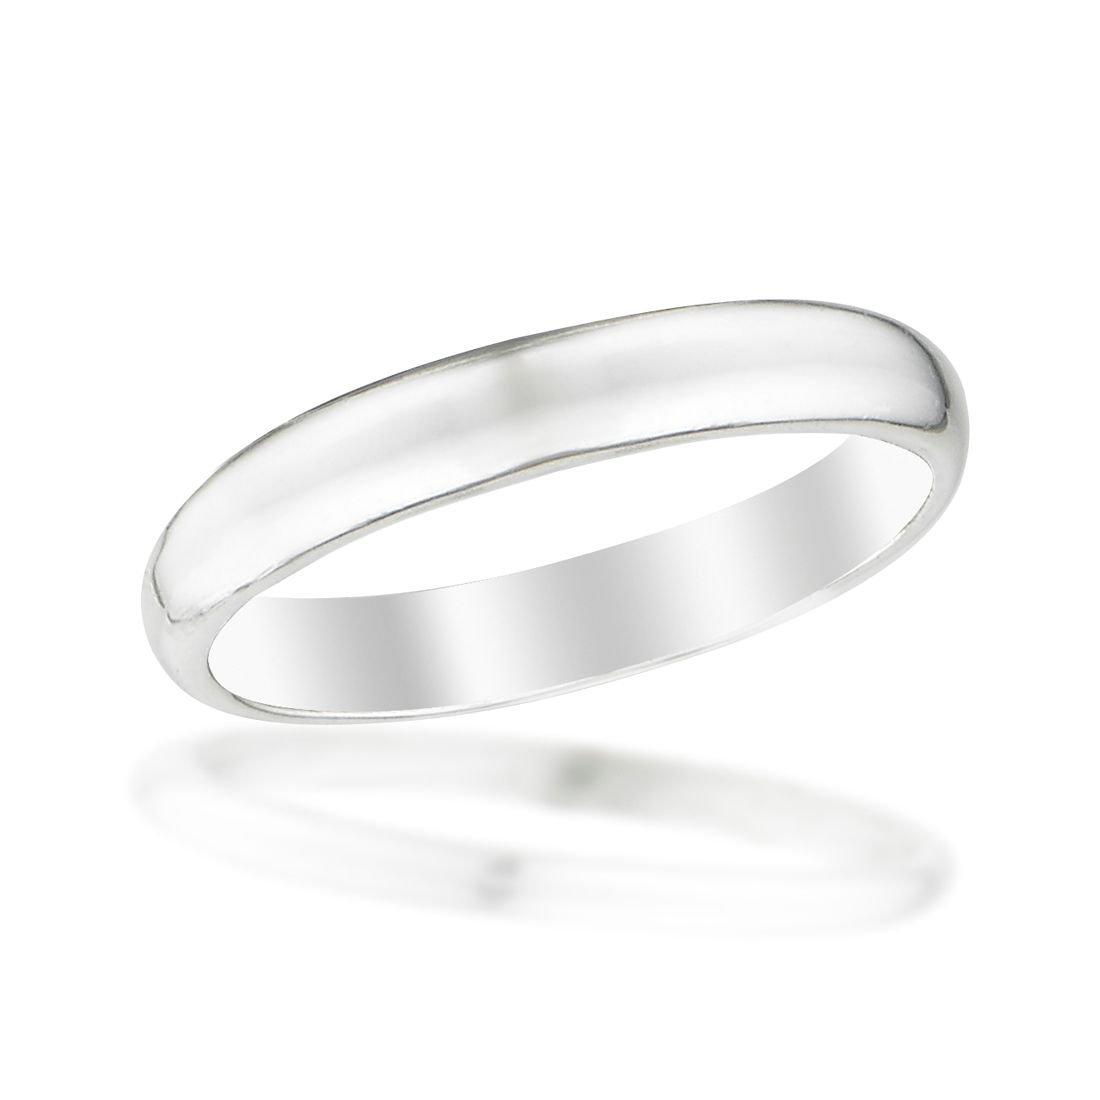 Beloved Child Goods Sterling Silver Baby Ring, 2mm domed band in a size 0 for a newborn, beautifully gift packaged by makes an Ideal Baby Shower, Baptism or Christening, Welcome Baby or